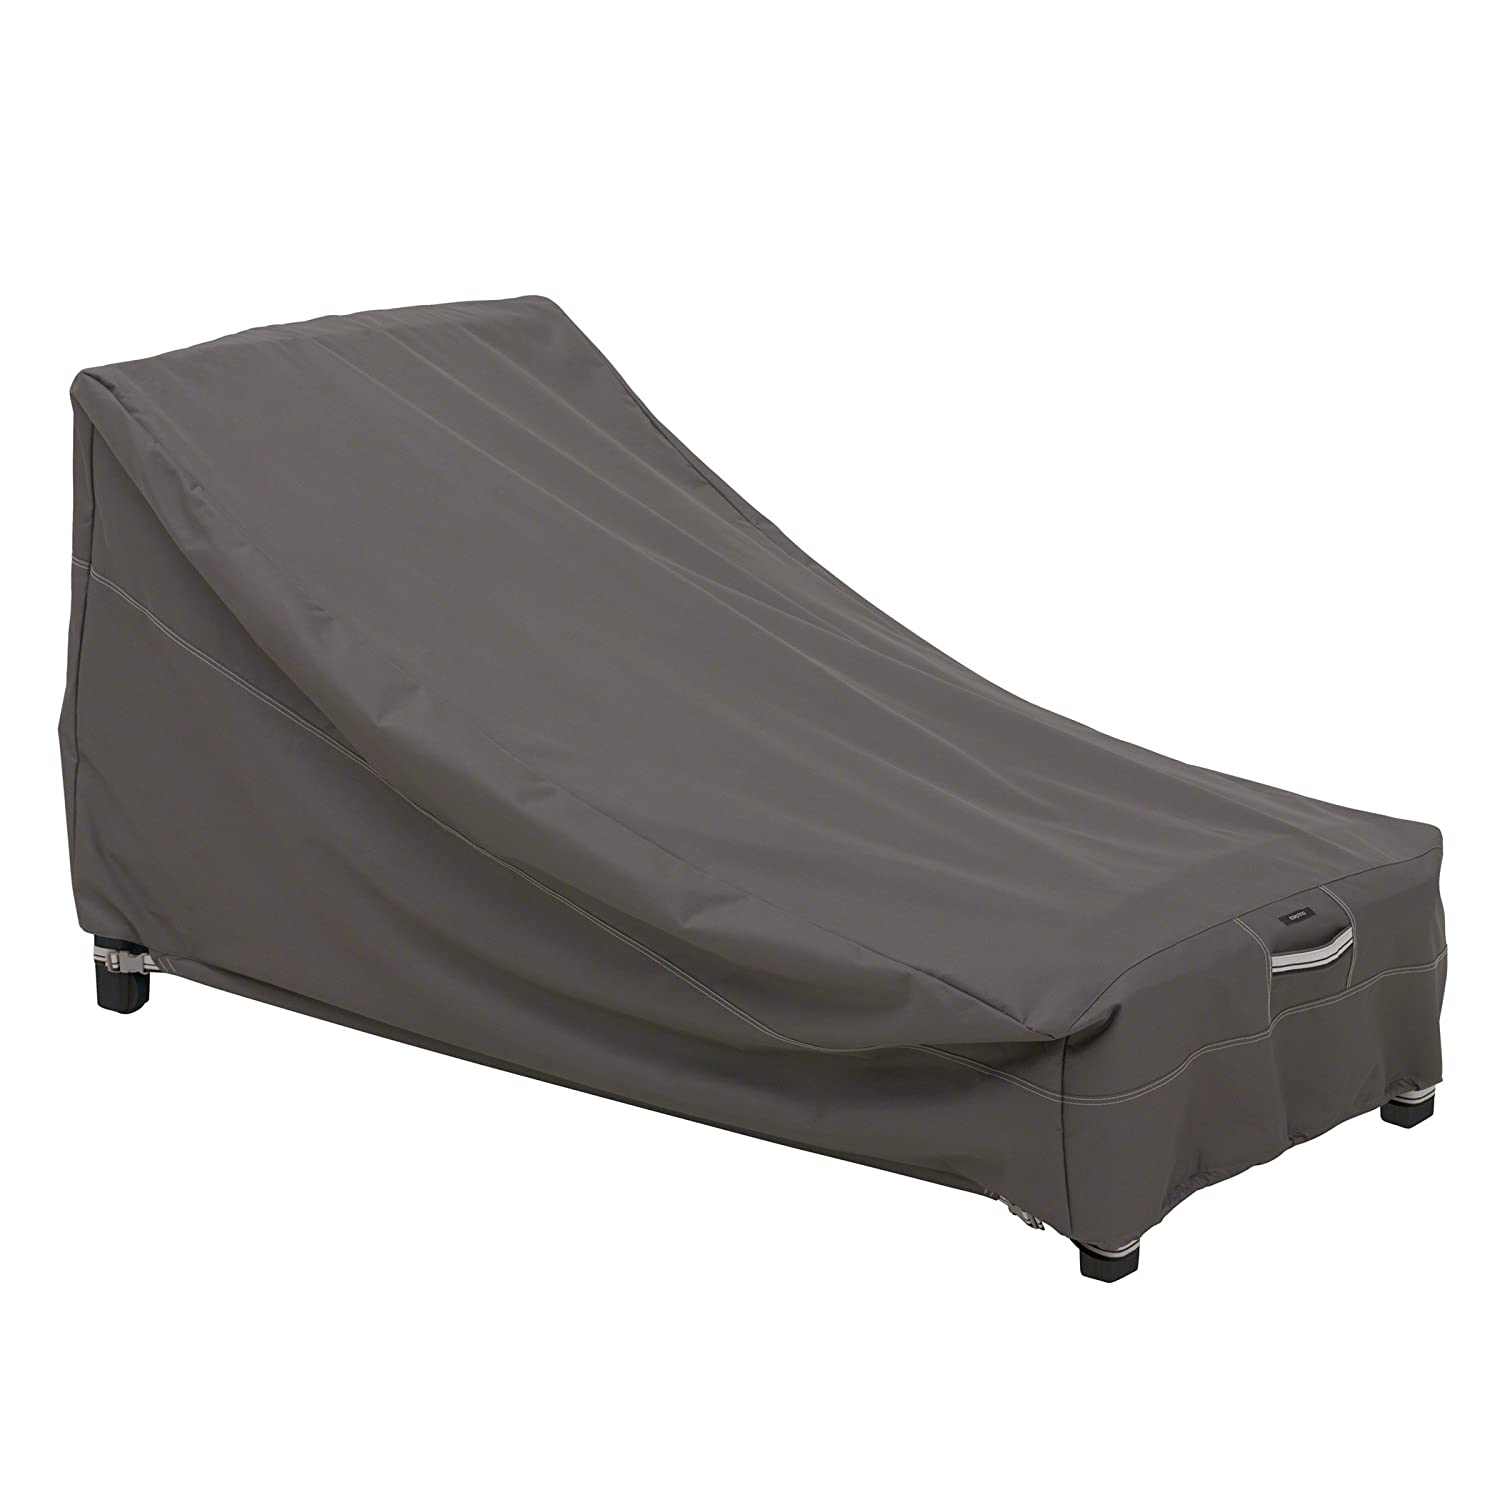 Classic Accessories 55-162-035101-EC Ravenna Patio Day Chaise Cover, Medium, Taupe